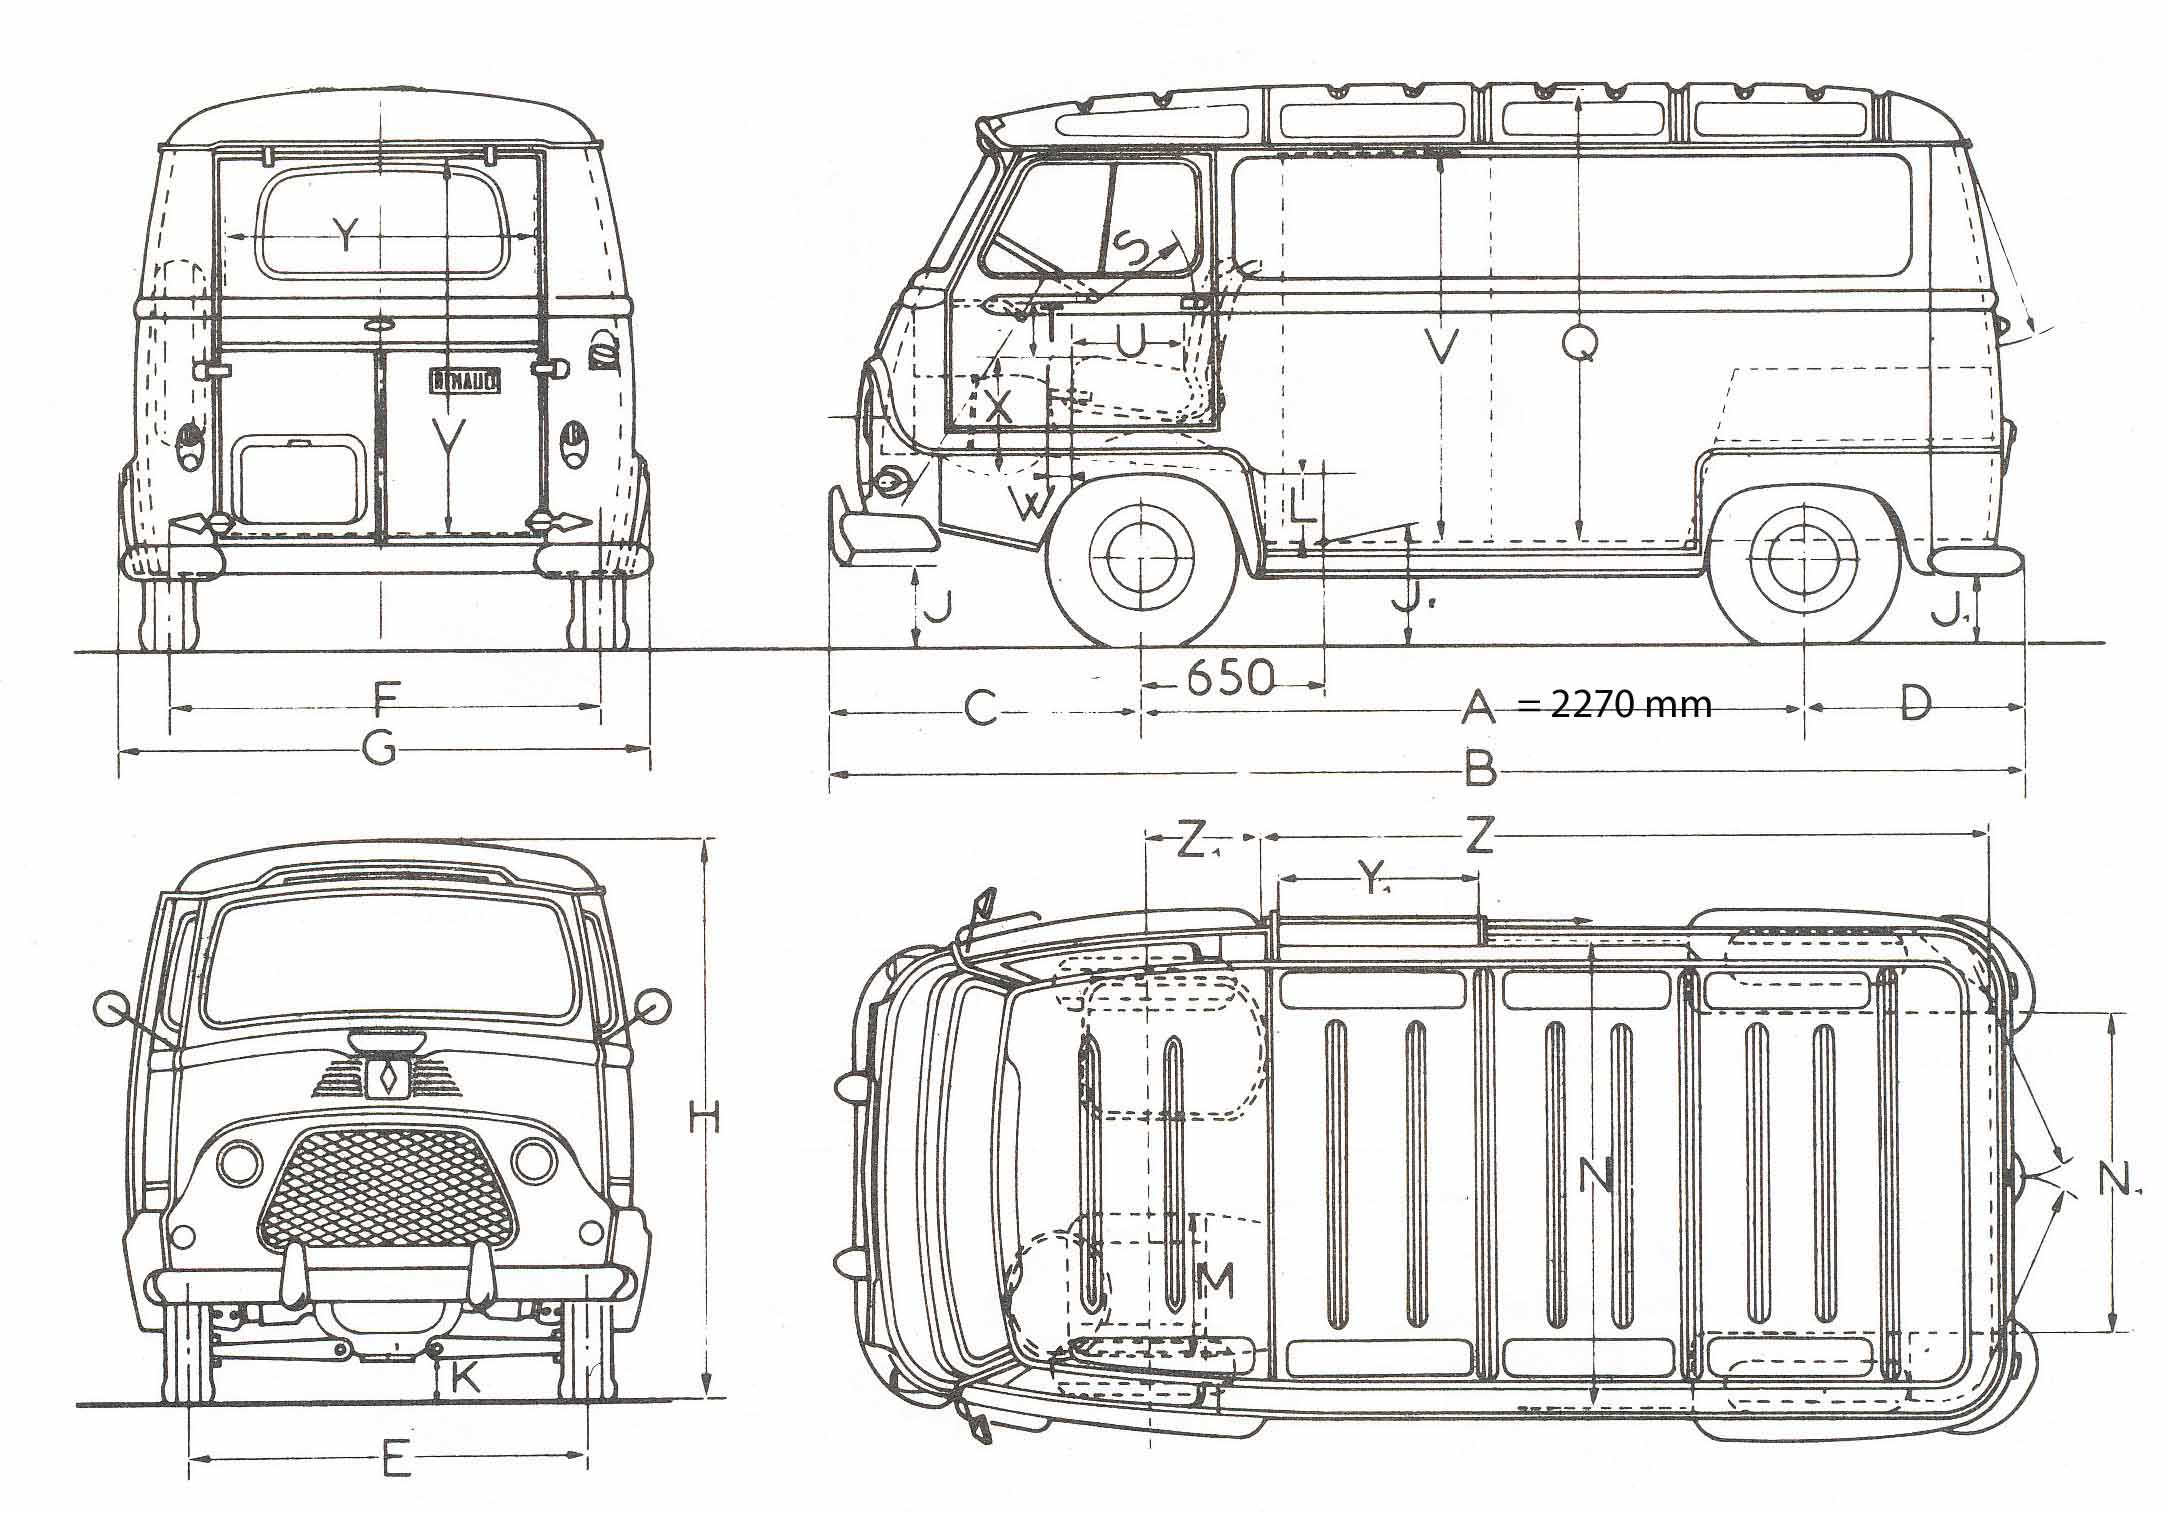 Renault Estafette blueprint